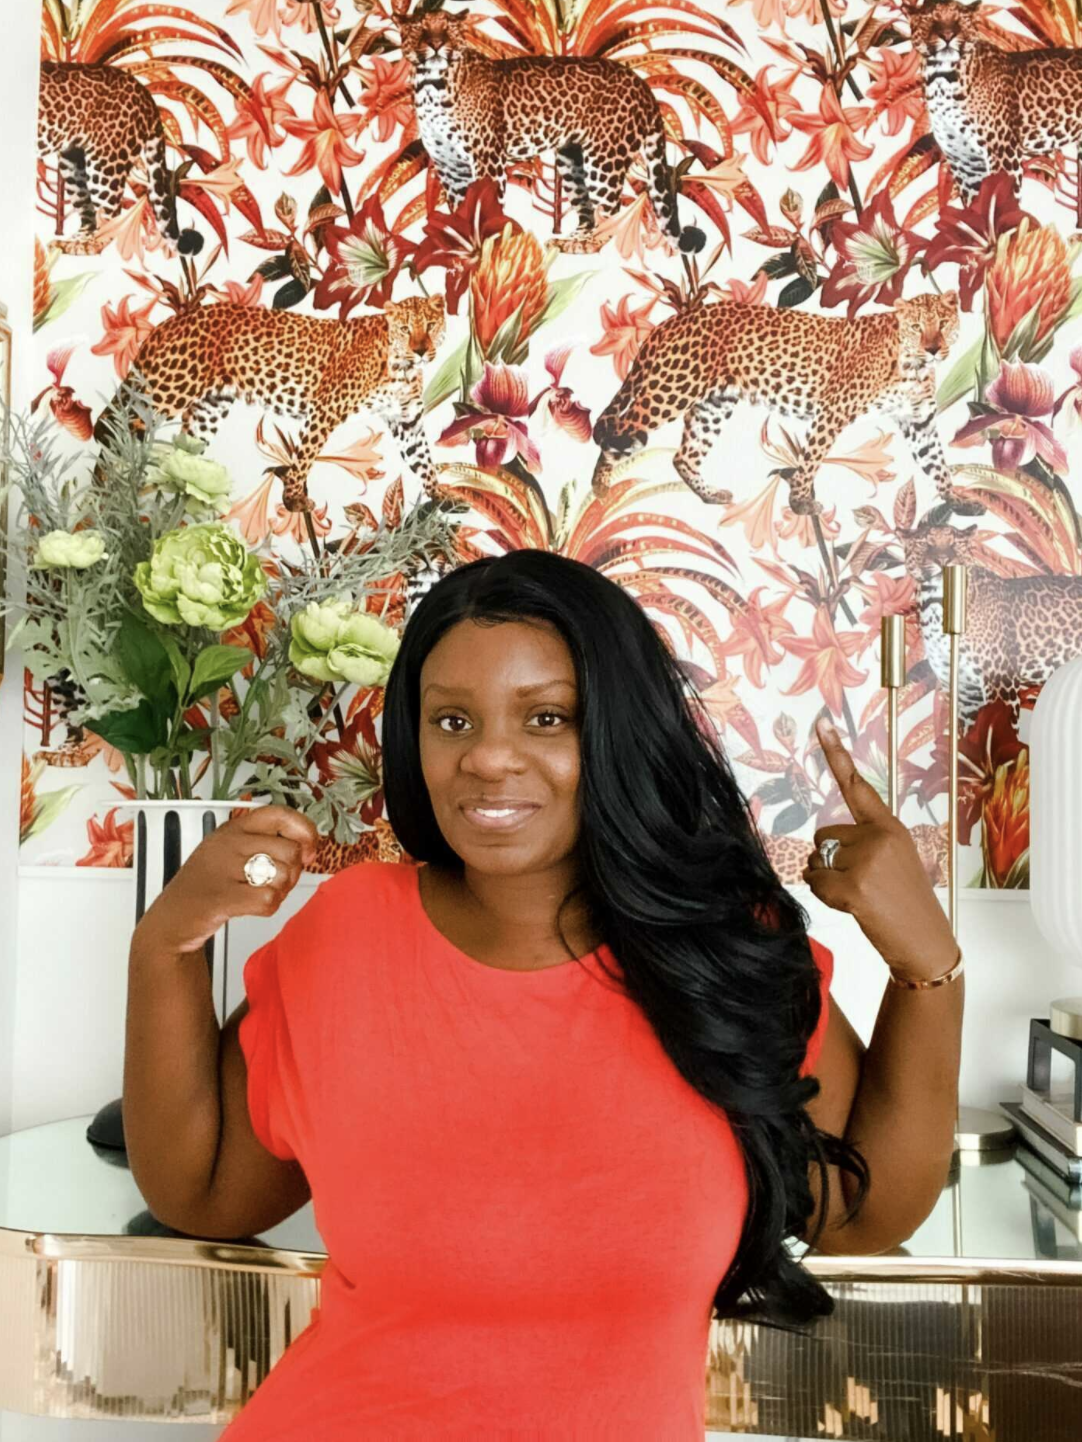 Designer/Influencer Tiffany Brown of My Eclectic Nest